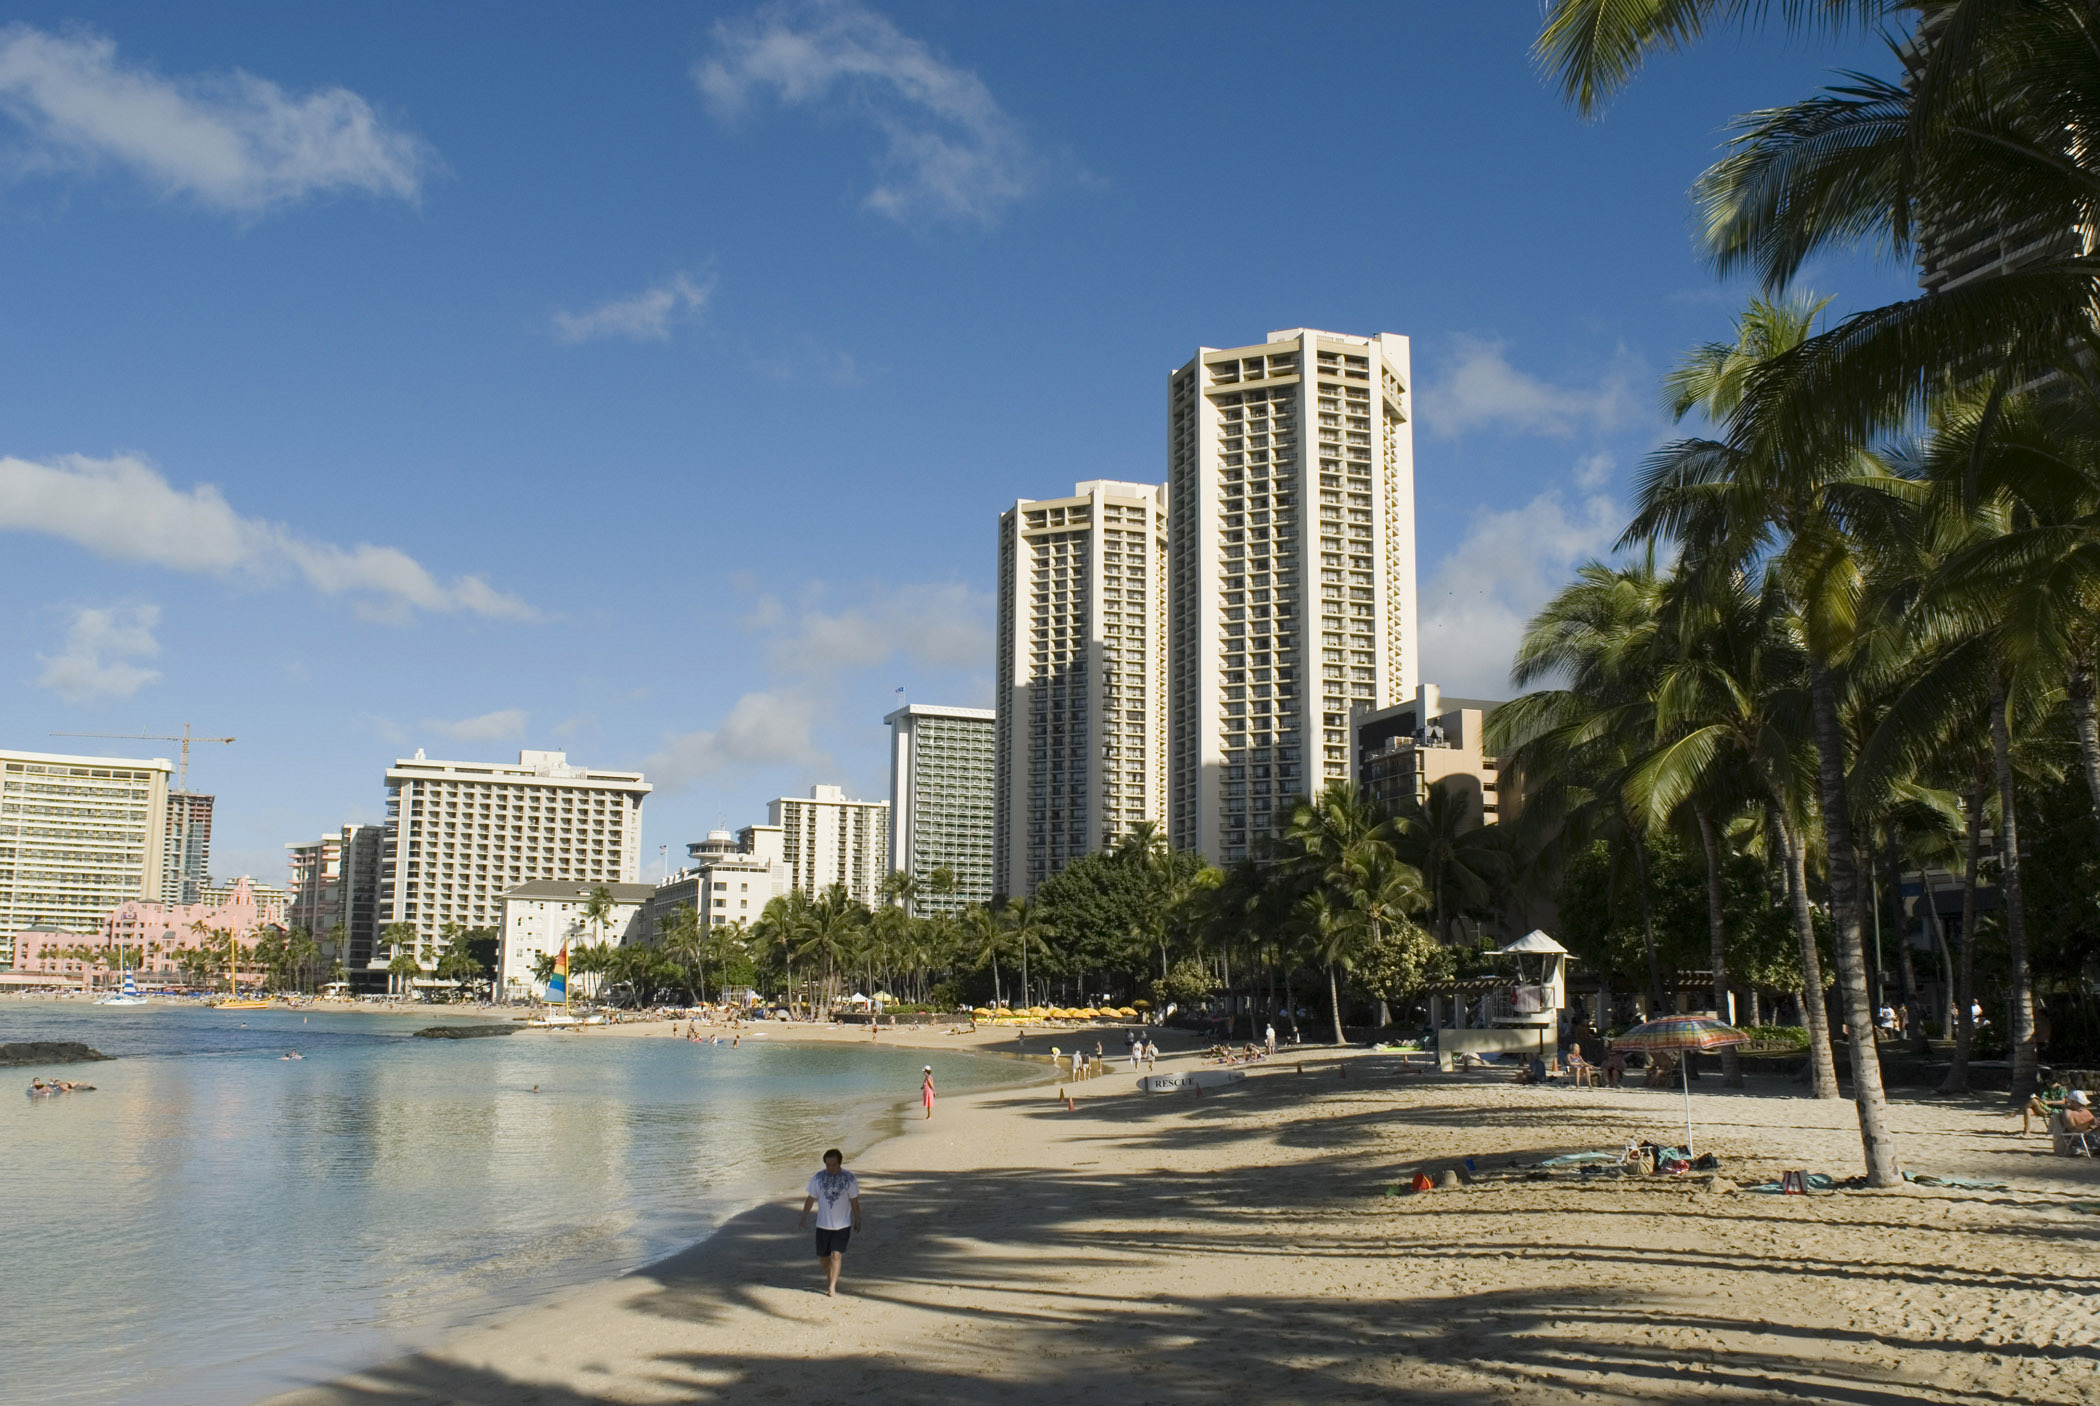 Scenic view of Waikiki Beach, Hawaii with its golden sand, palm trees and high-rise apartment blocks overlooking the bay